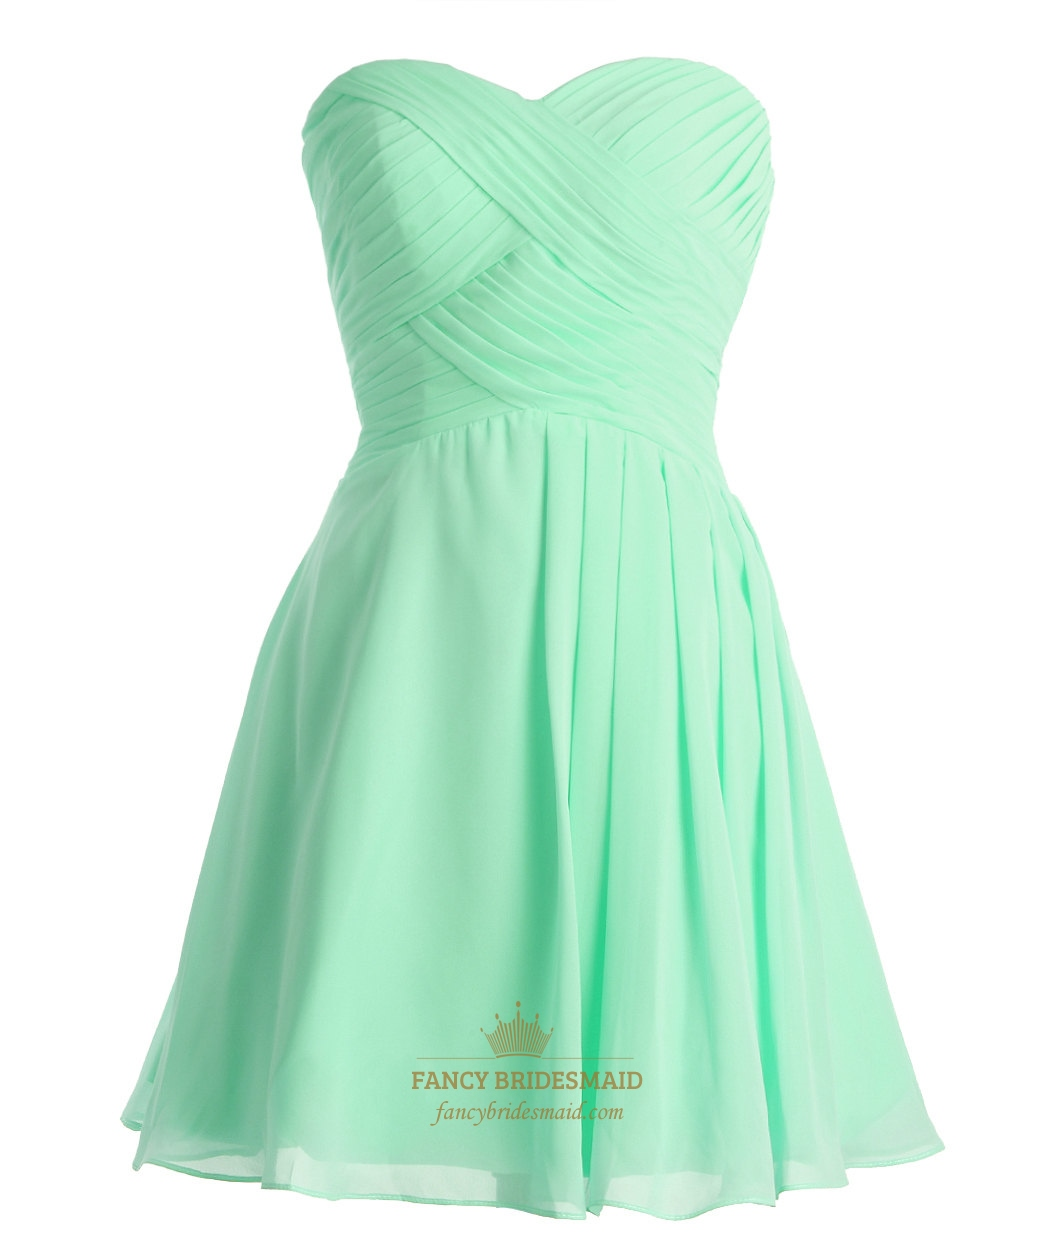 chiffon bridesmaid dresses short green wedding dresses asian